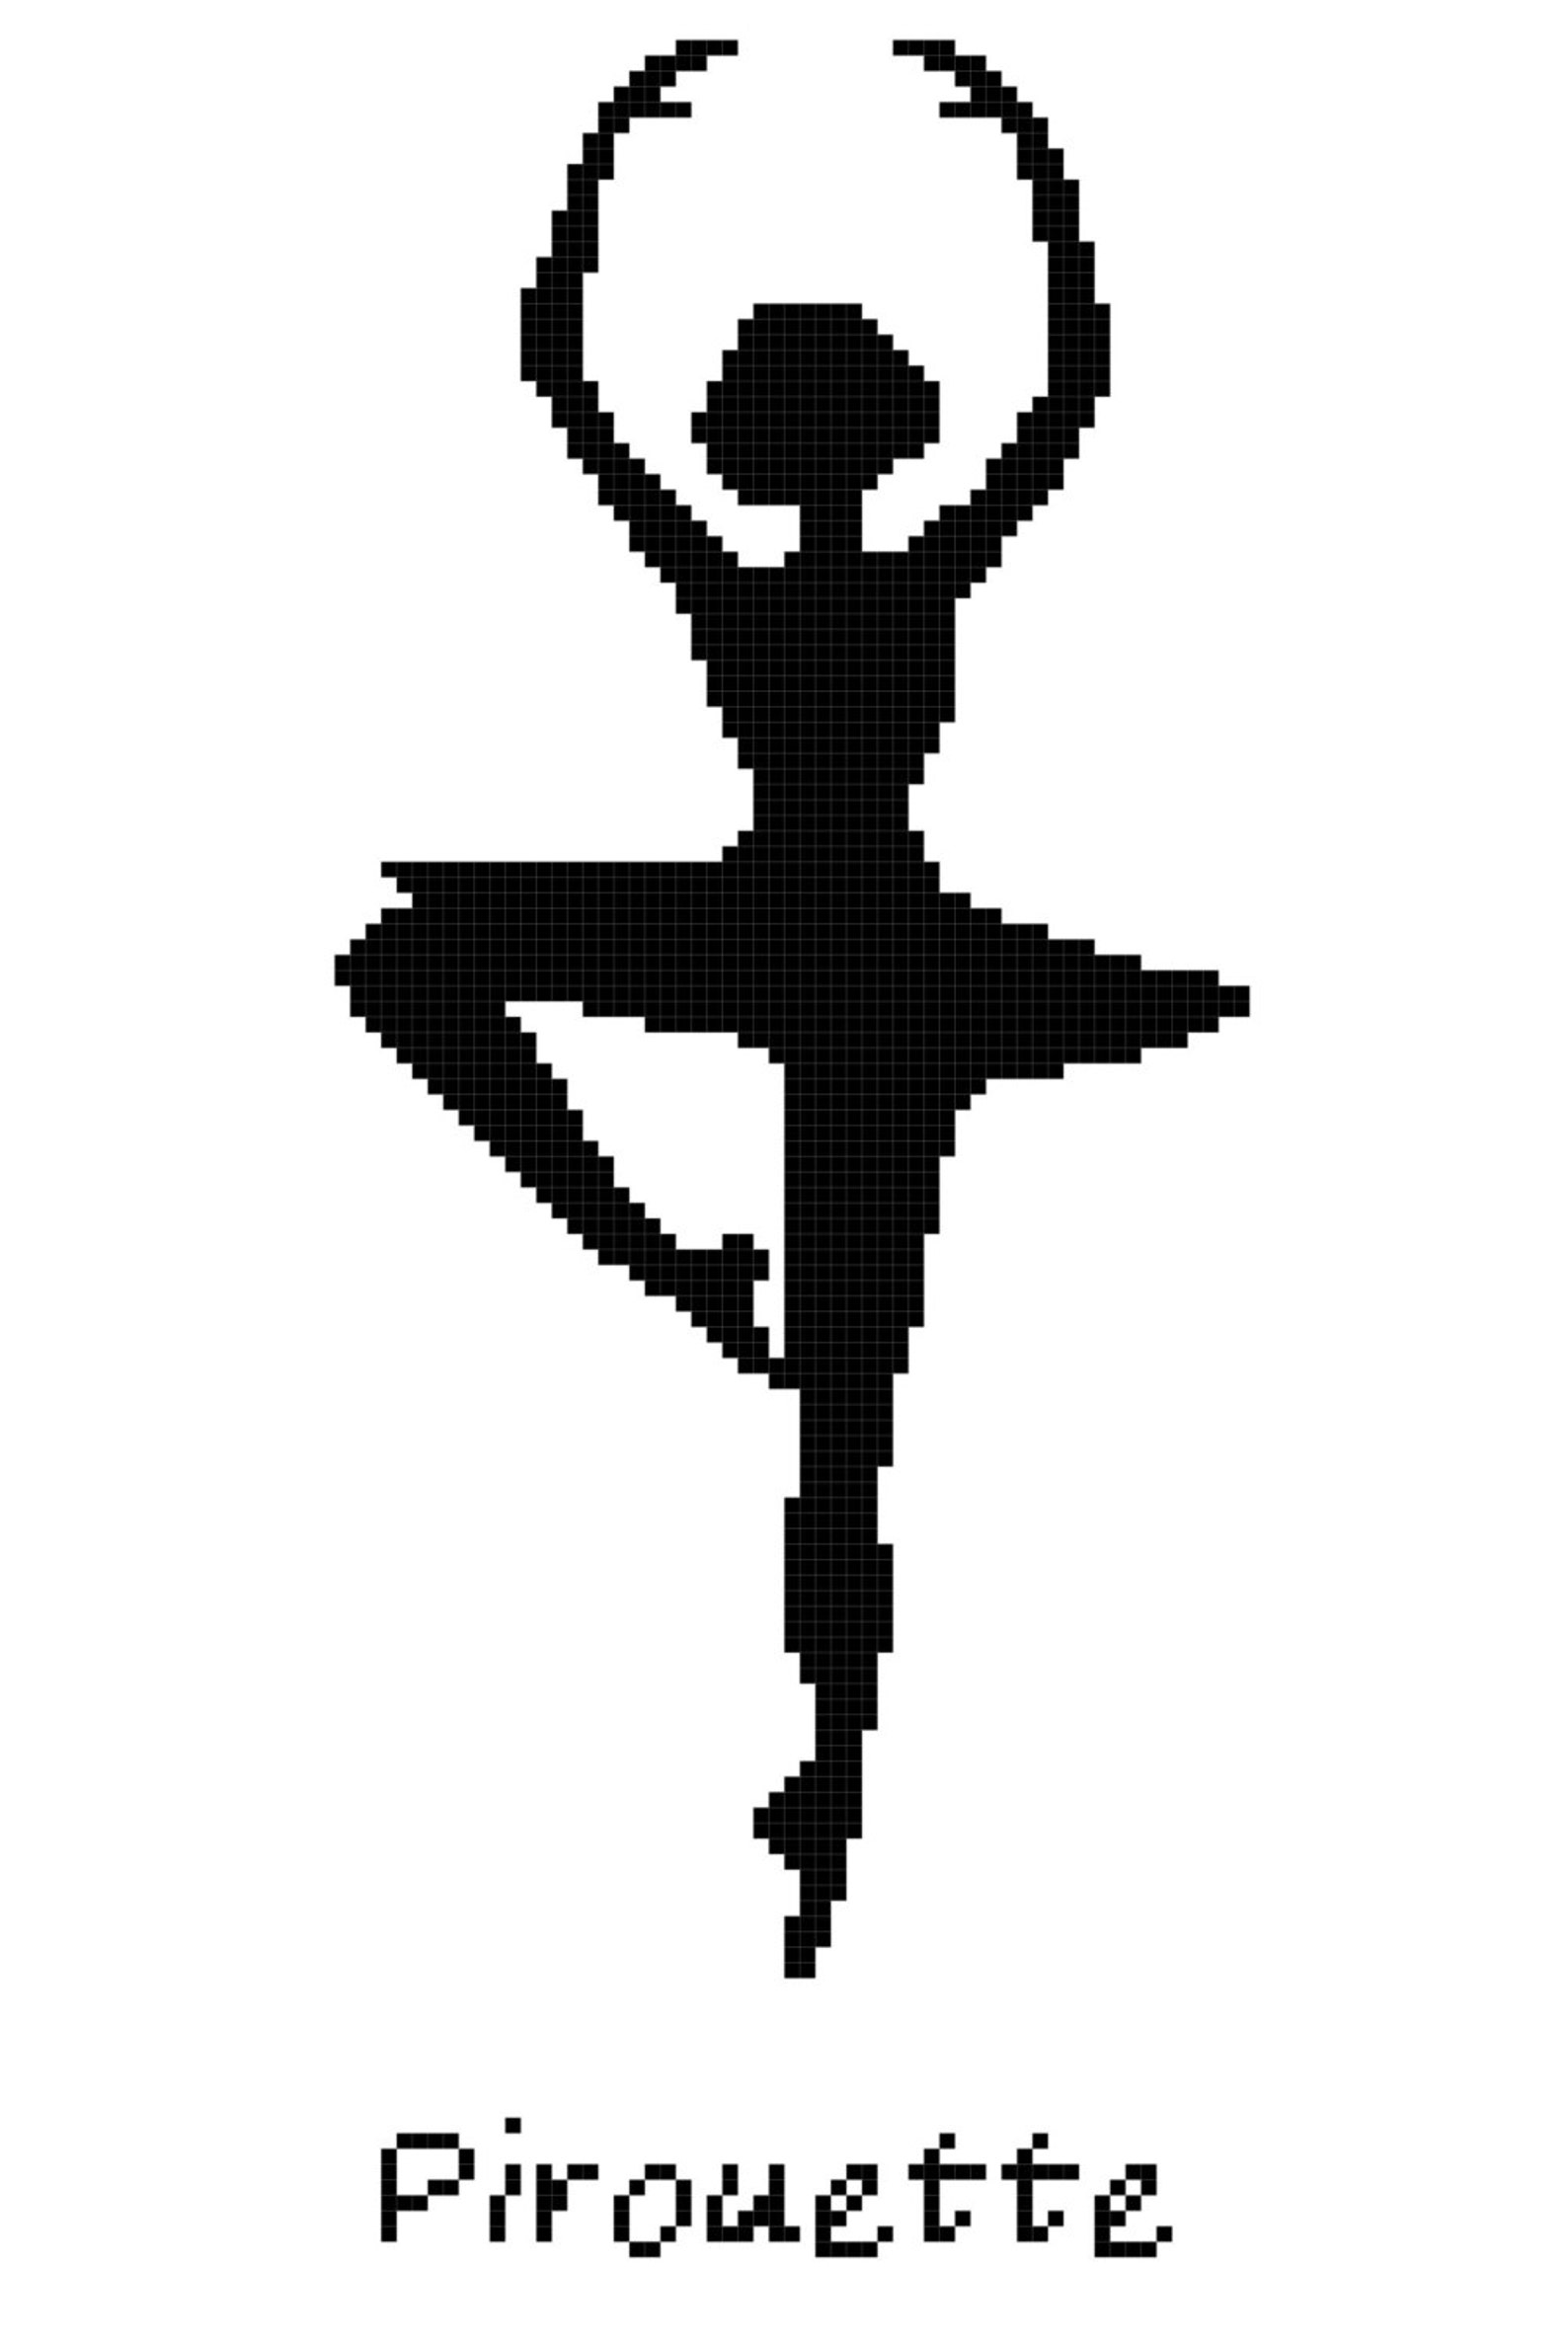 ballet position pirouette wall art cross stitch pattern